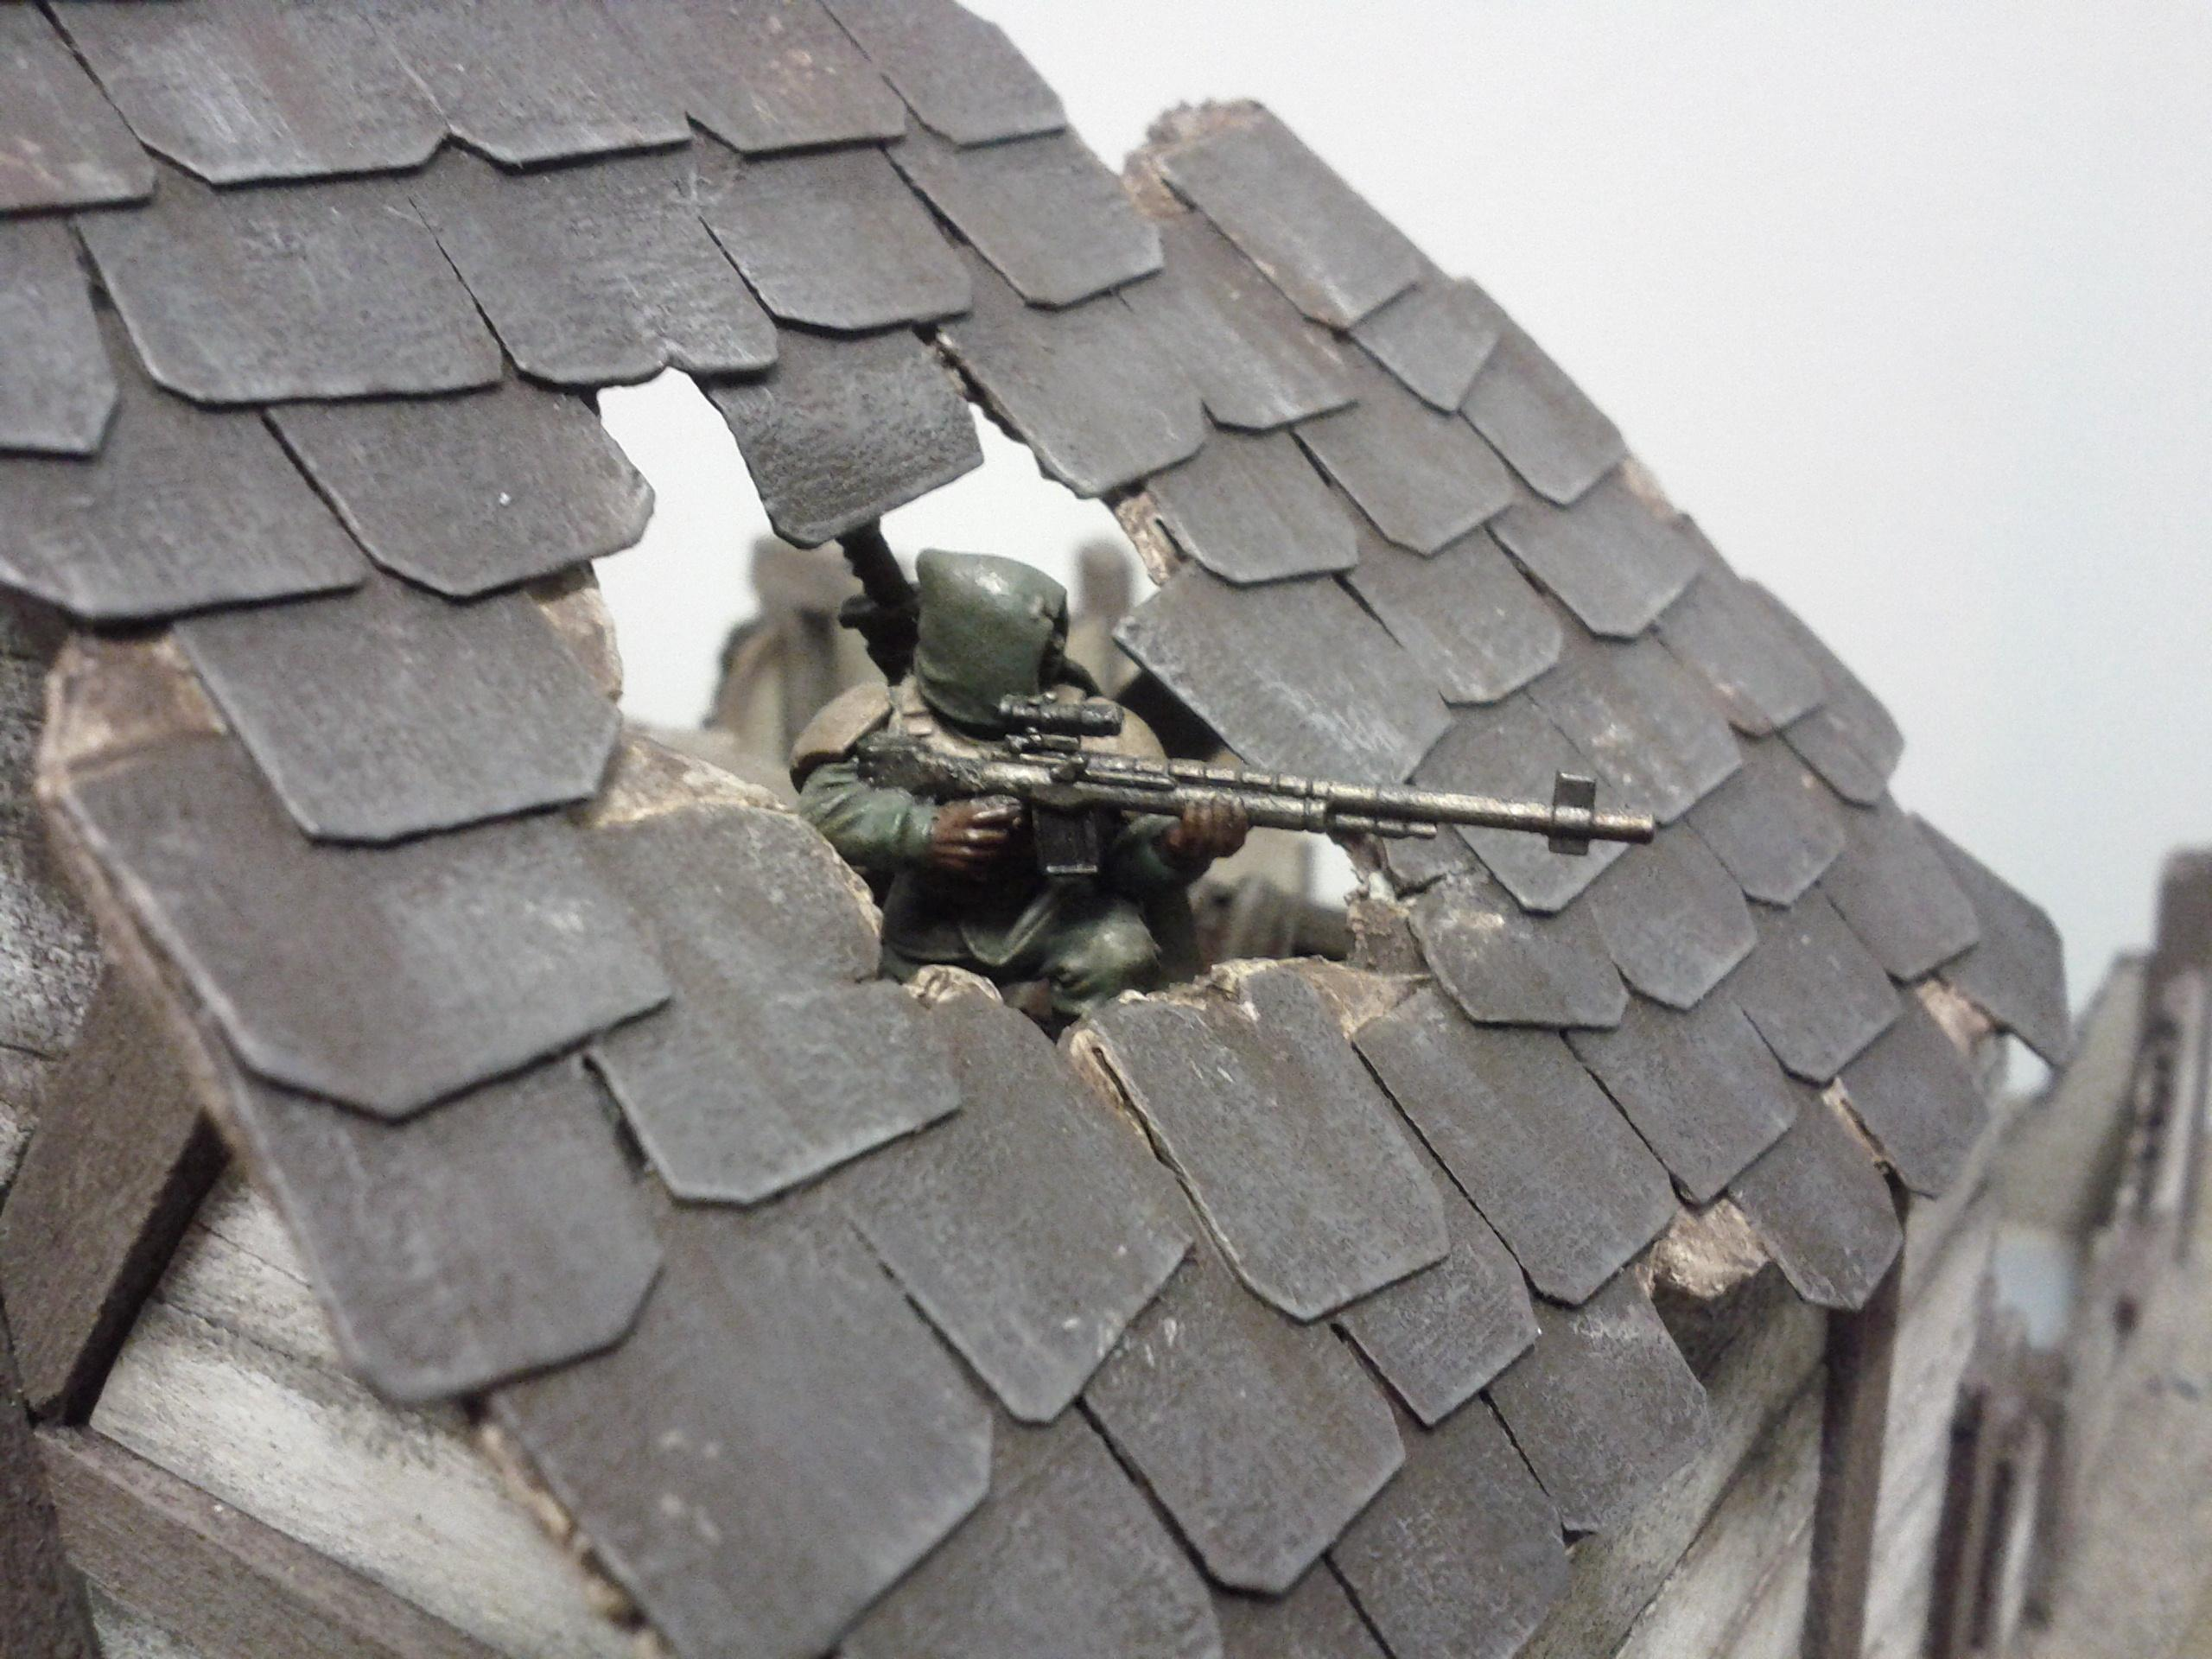 Sniping through roof